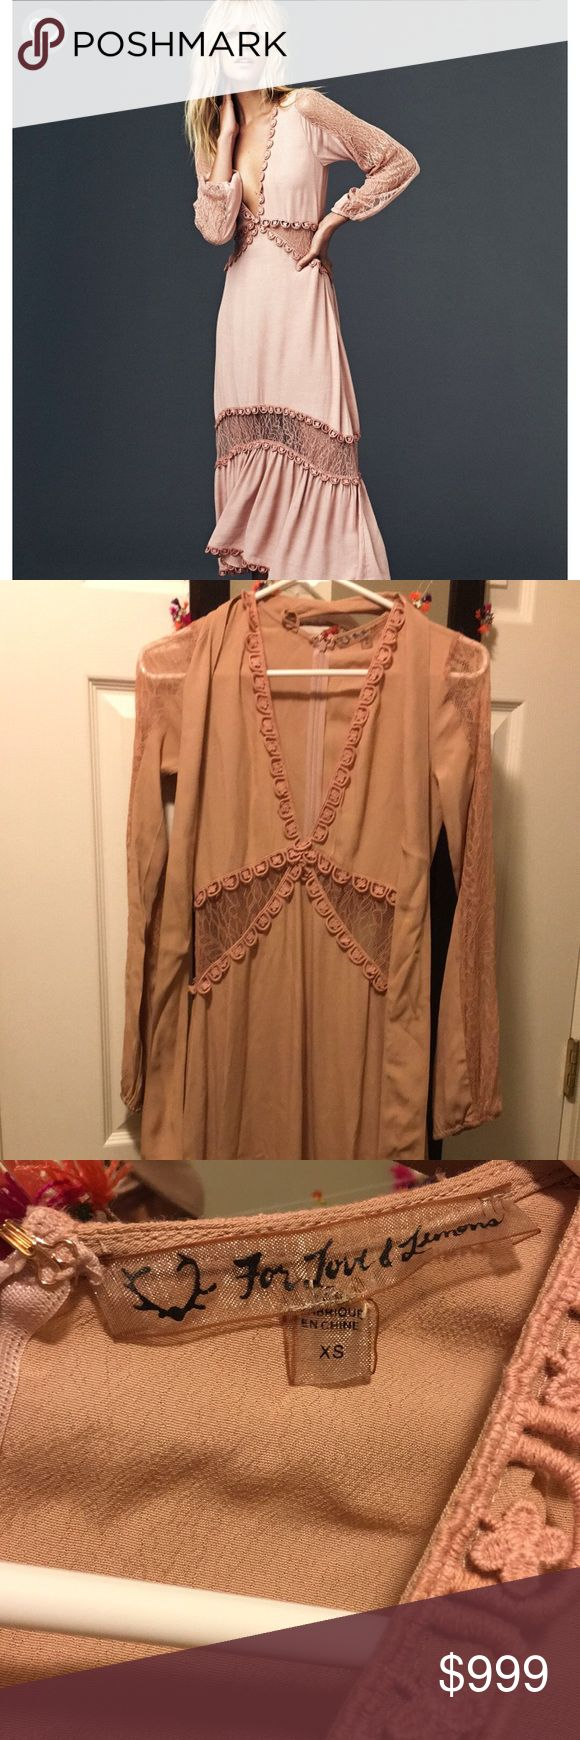 FL&L Lilou midi dress SIZE SWAP ONLY Looking to swap my xs for a SMALL ONLY. No other swaps considered. Dress is in excellent condition, tried on a few times and hand washed. No tears, pulls, stains, smells, anything. Looking for small in similar condition. For Love and Lemons Dresses Midi